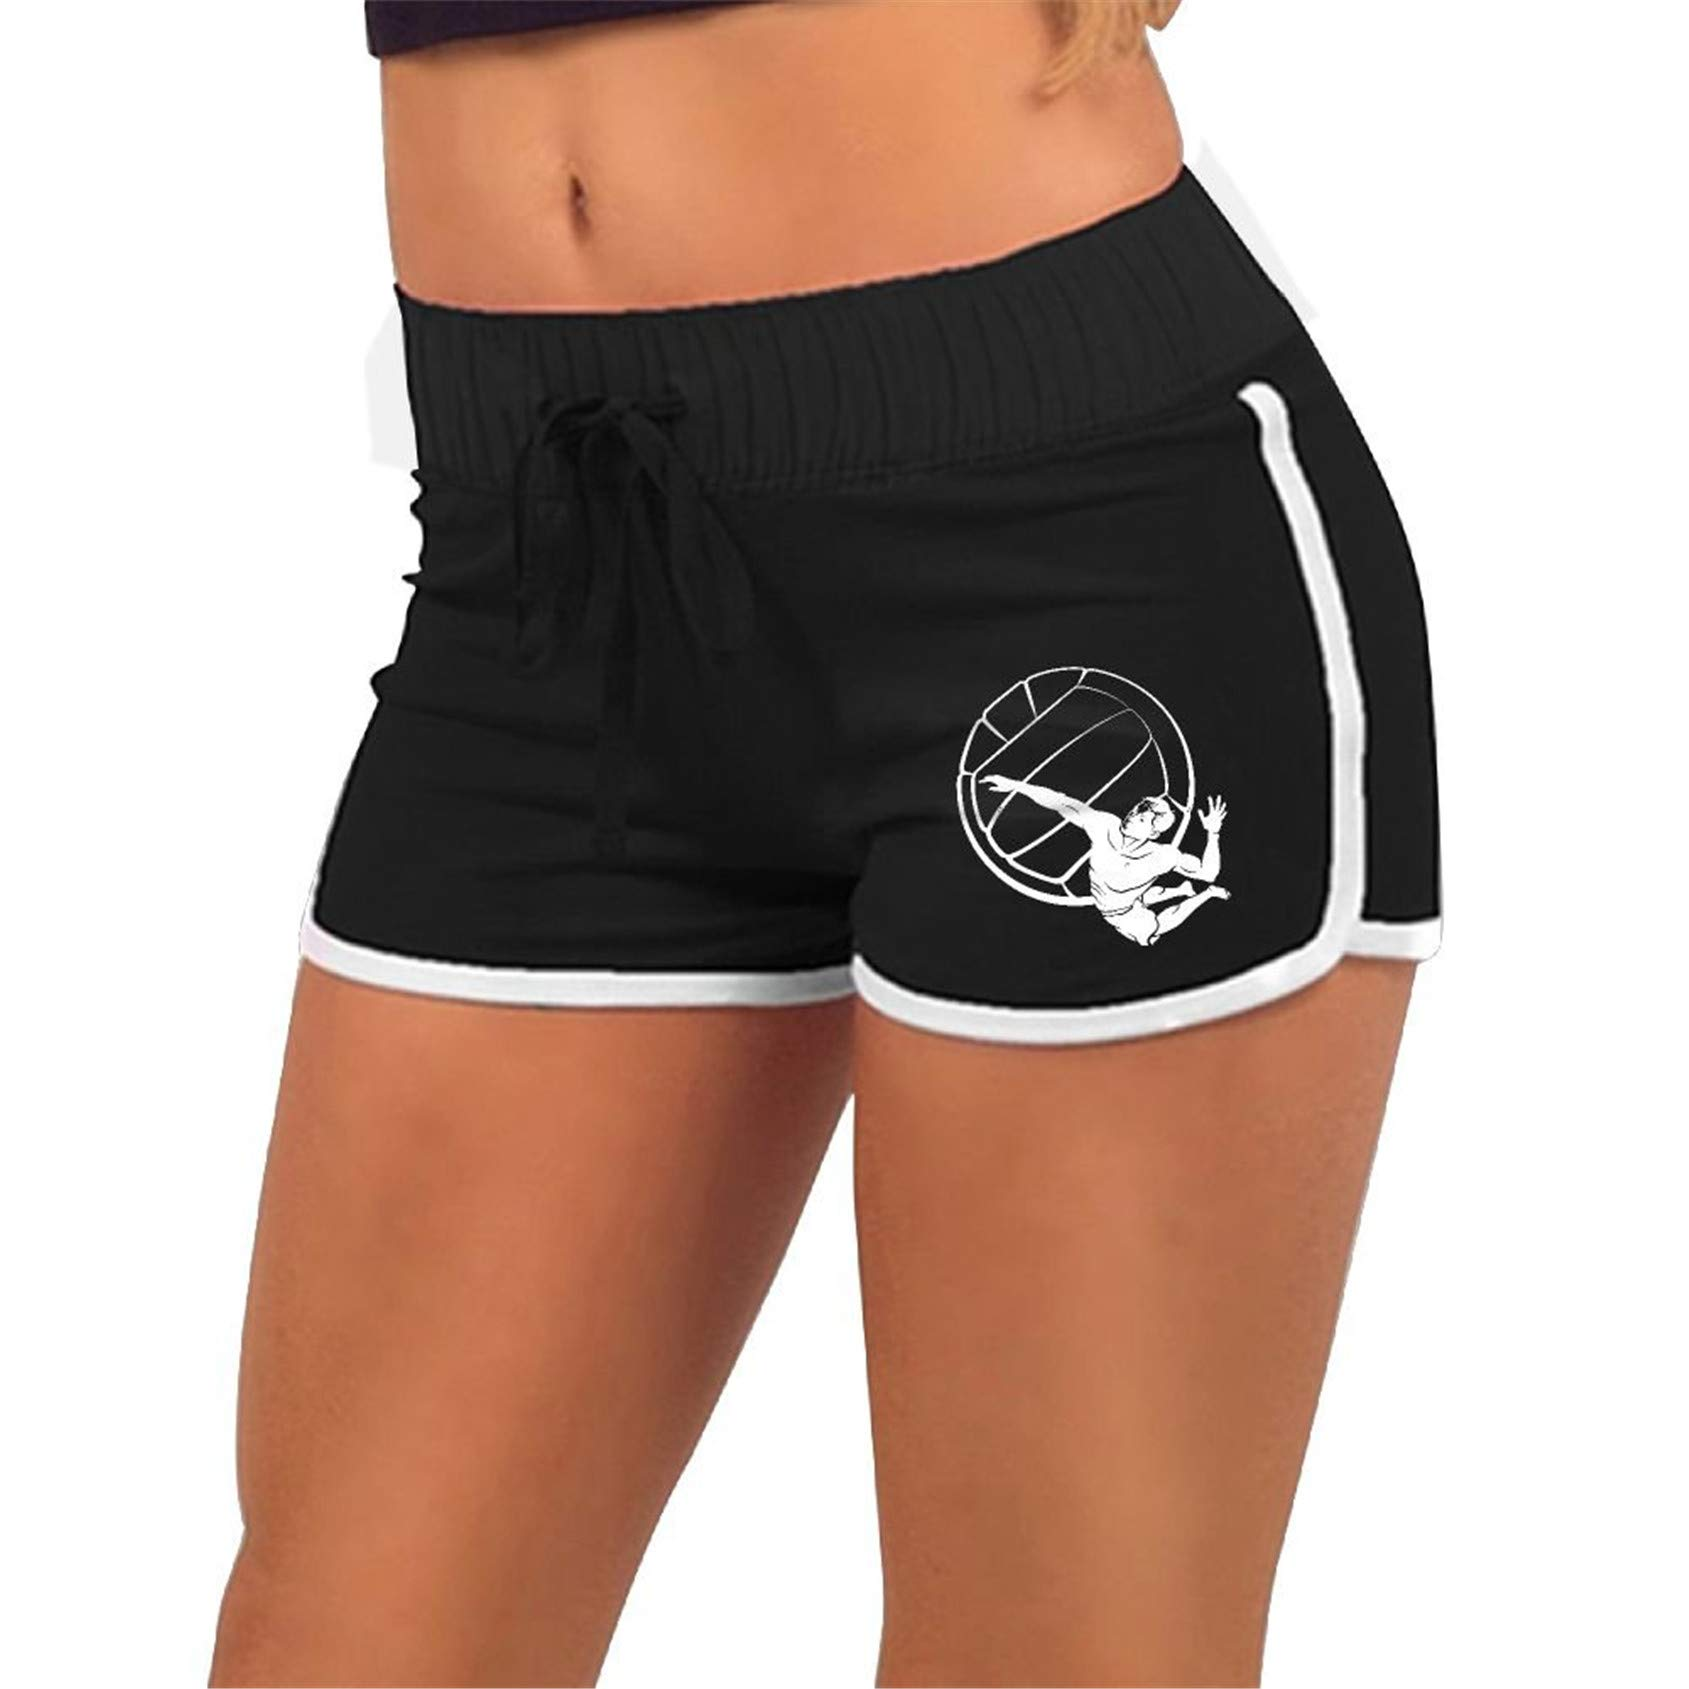 Beach Volleyball Spike,Workout,Running Active Shorts Pants with,Athletic Elastic Waist Womens Sports Shorts